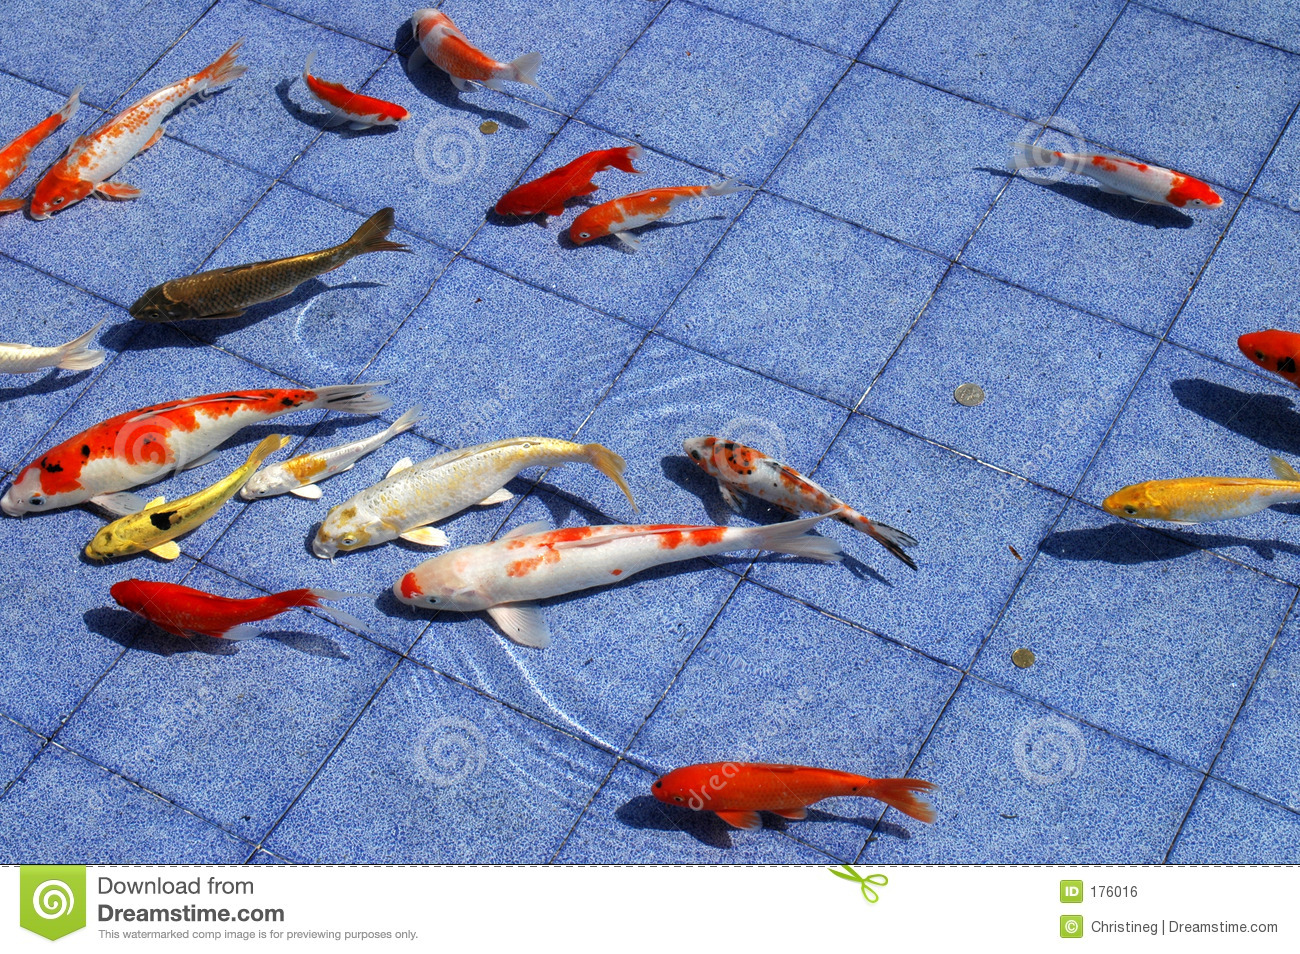 Koi fish in a blue pool stock photo Image of pond tank